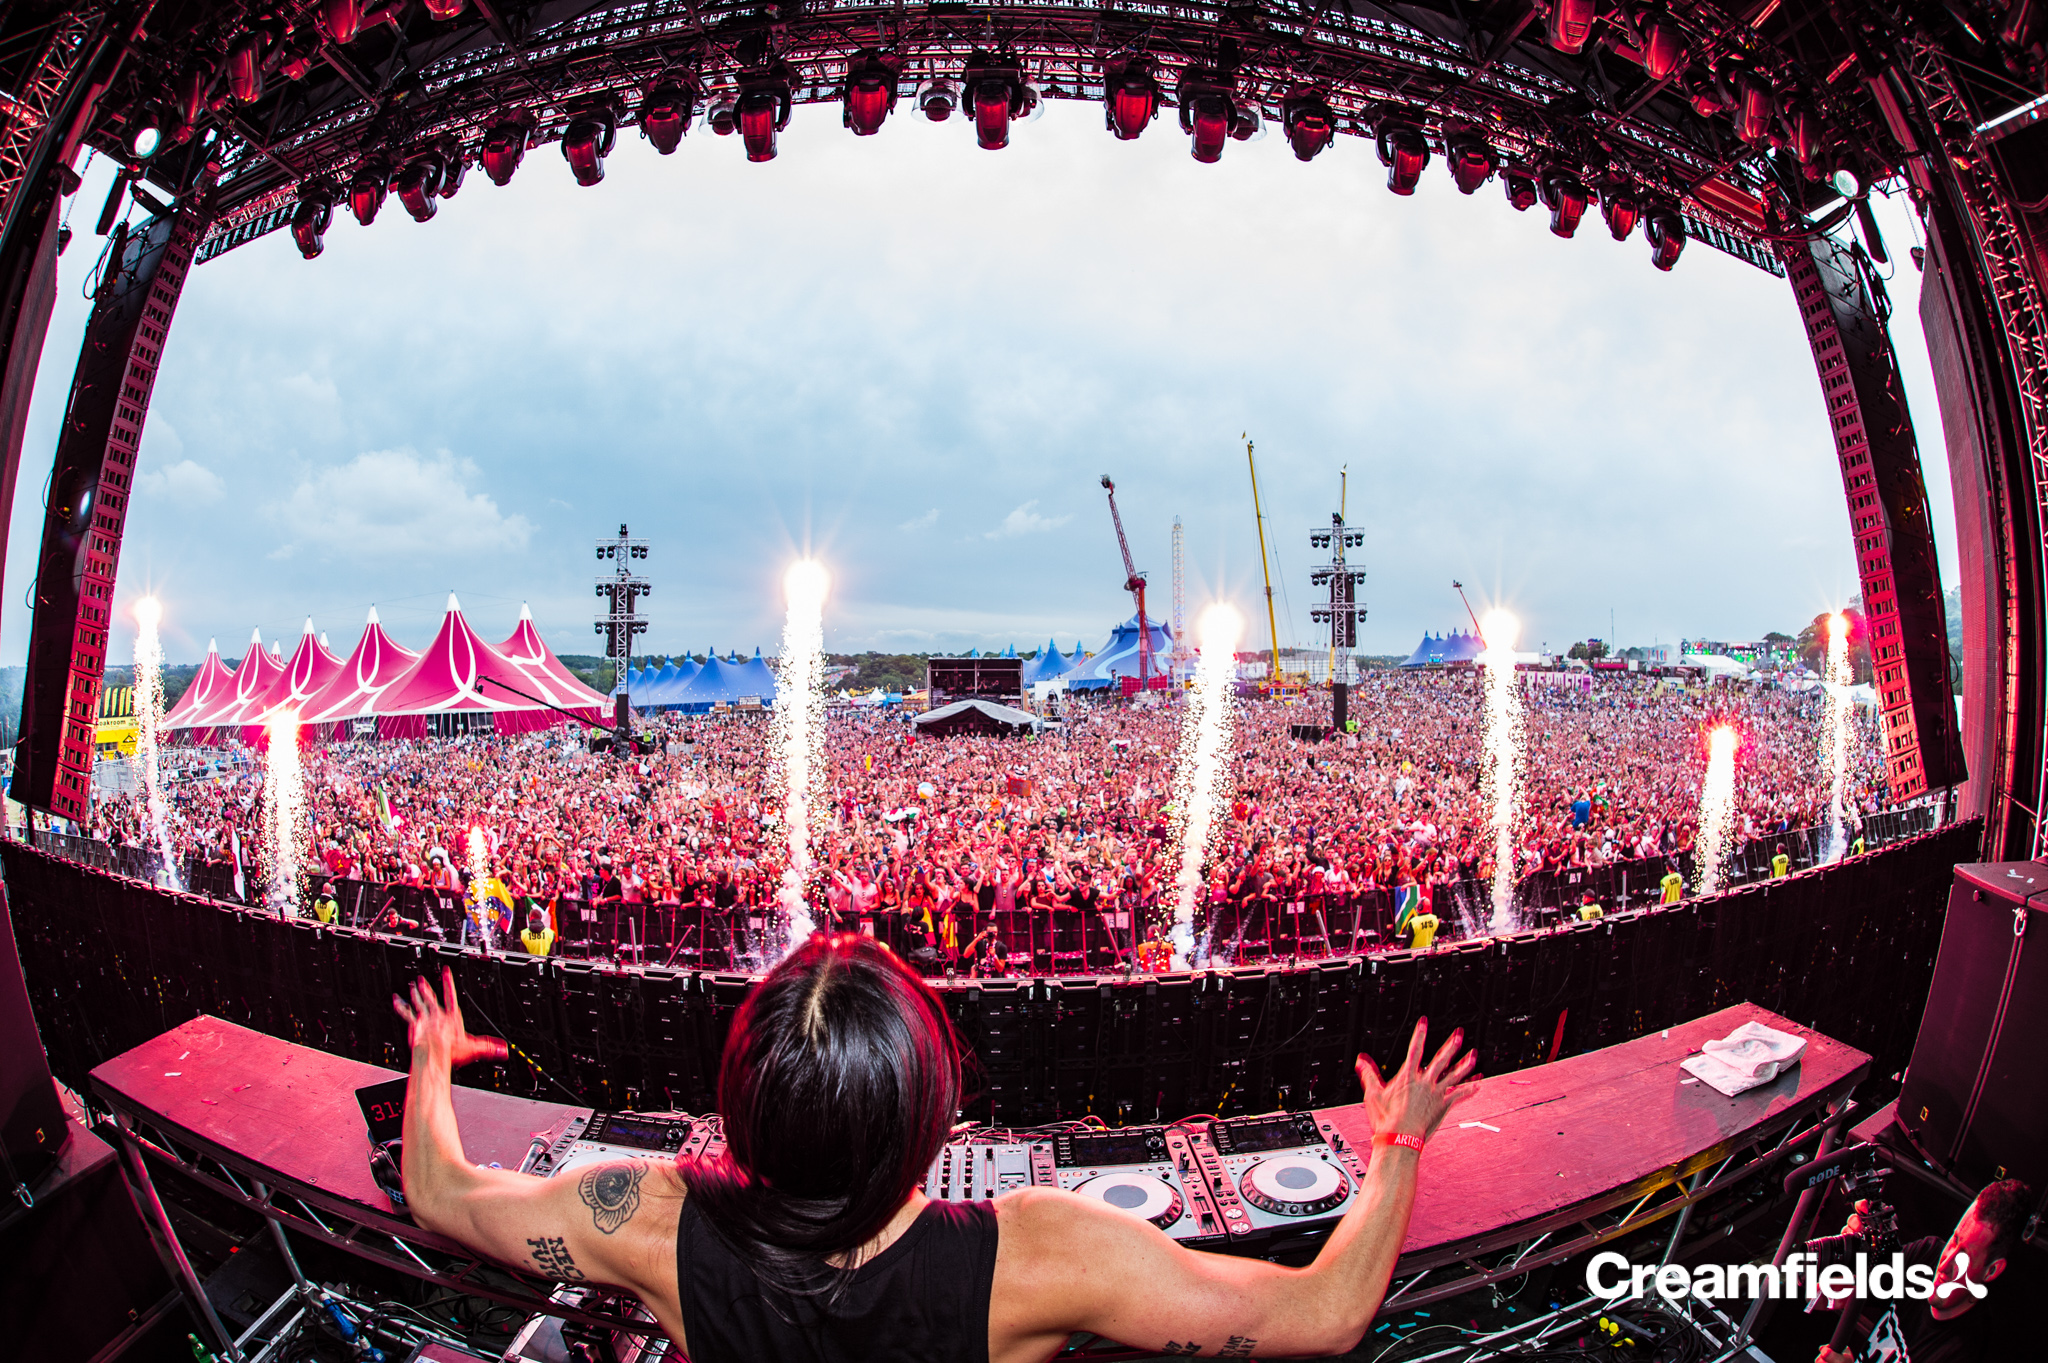 032 - LorenzoTnc - North Stage - Steve Aoki - Sunday